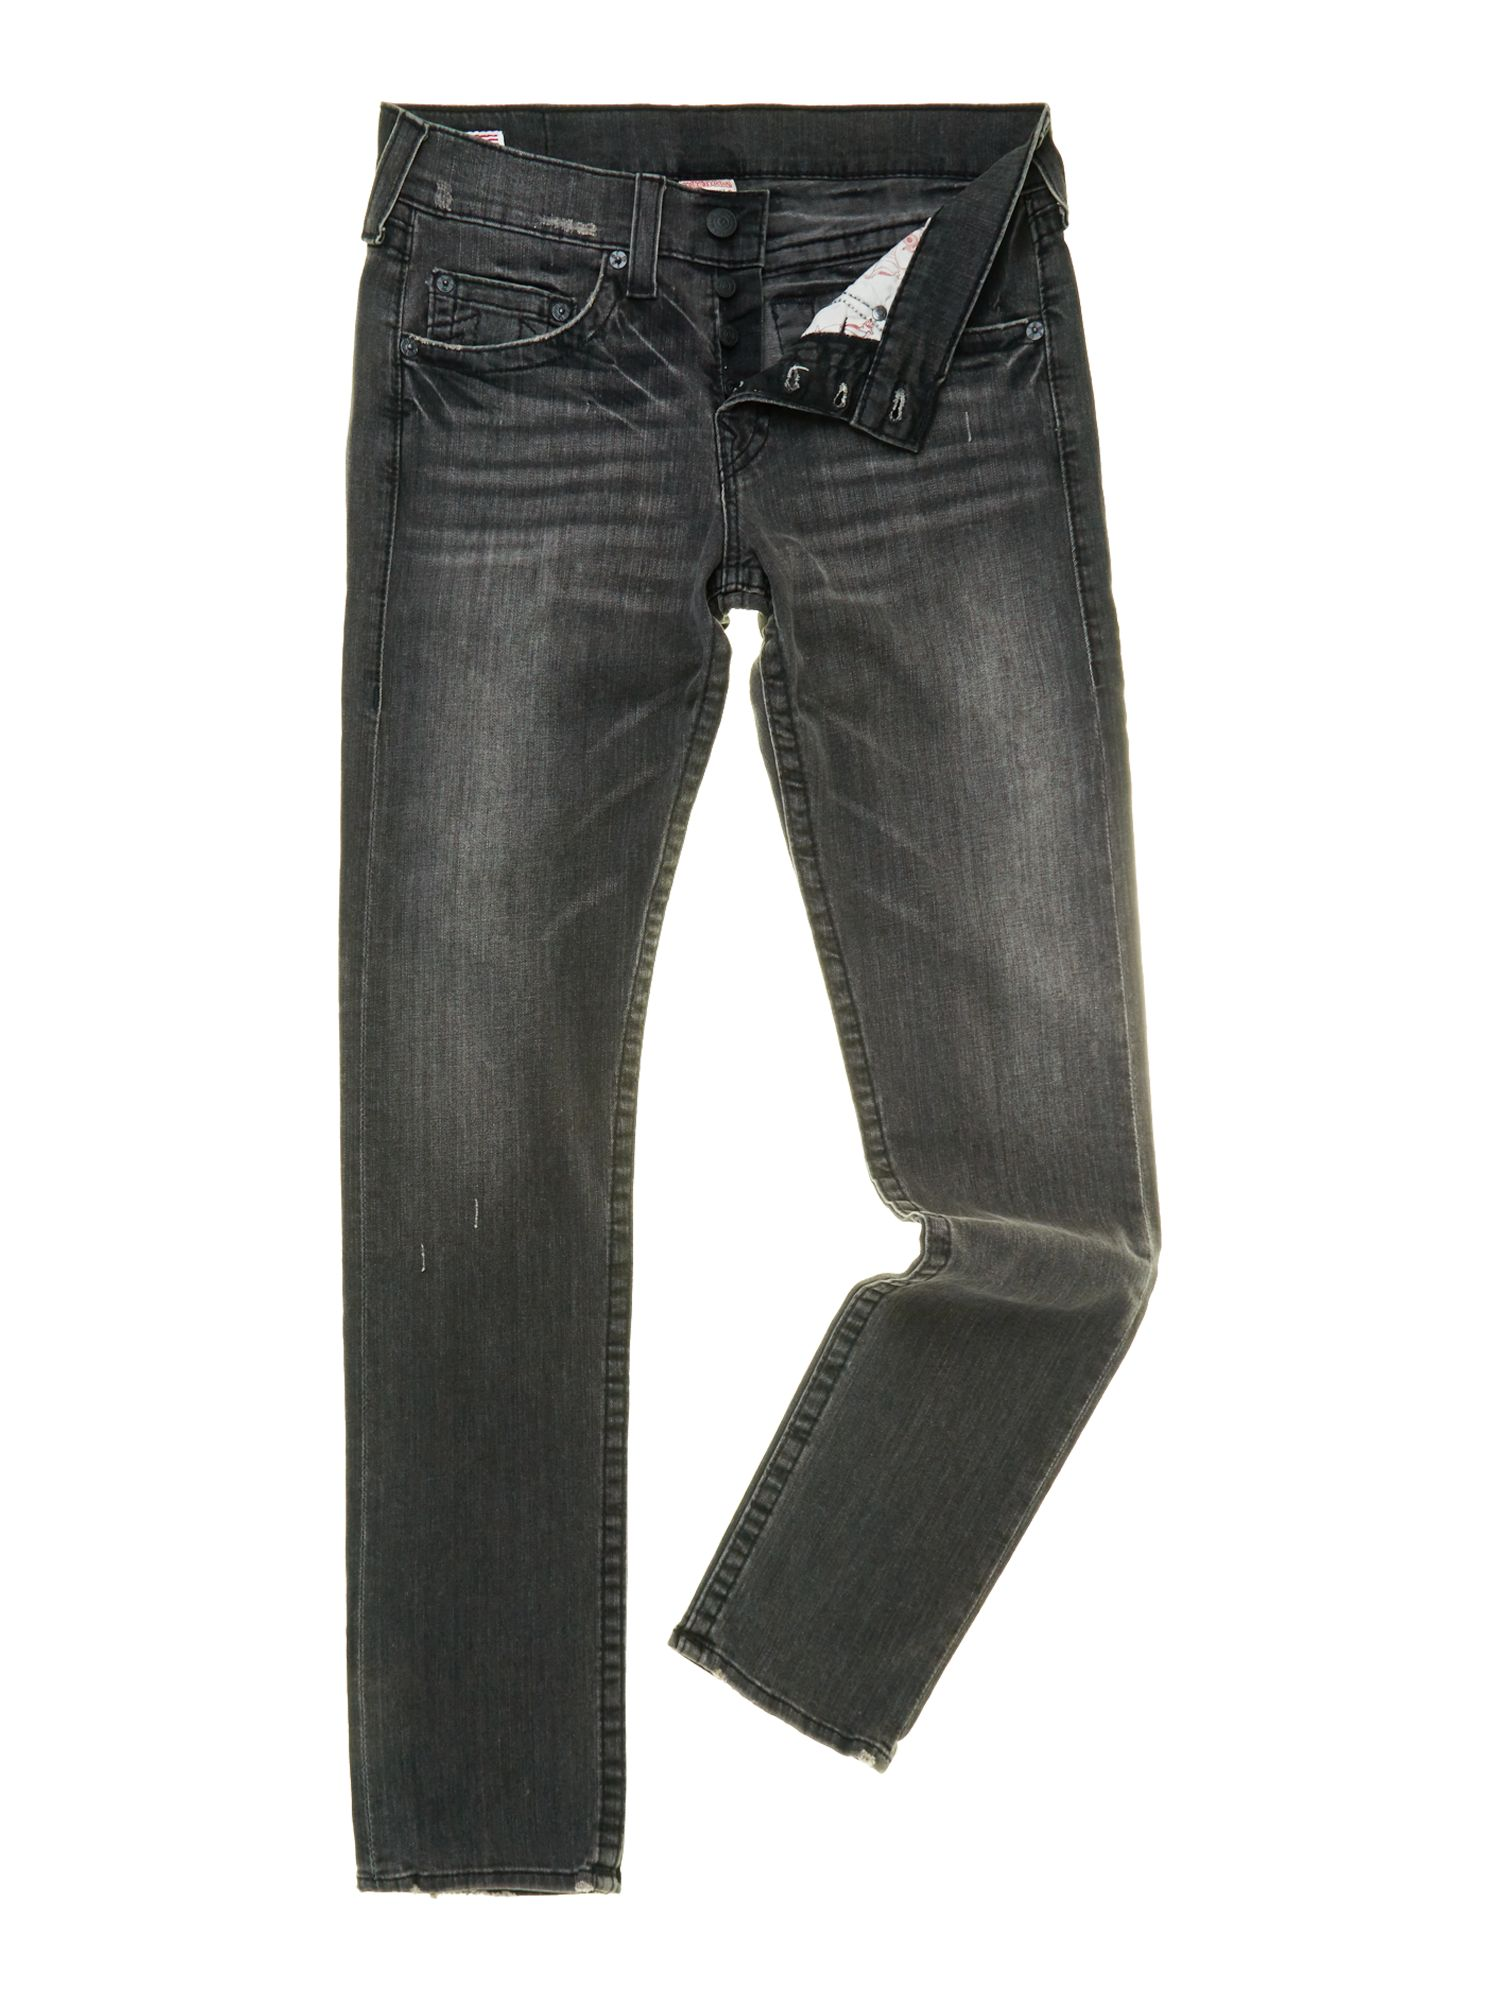 Rocco slim fit jean